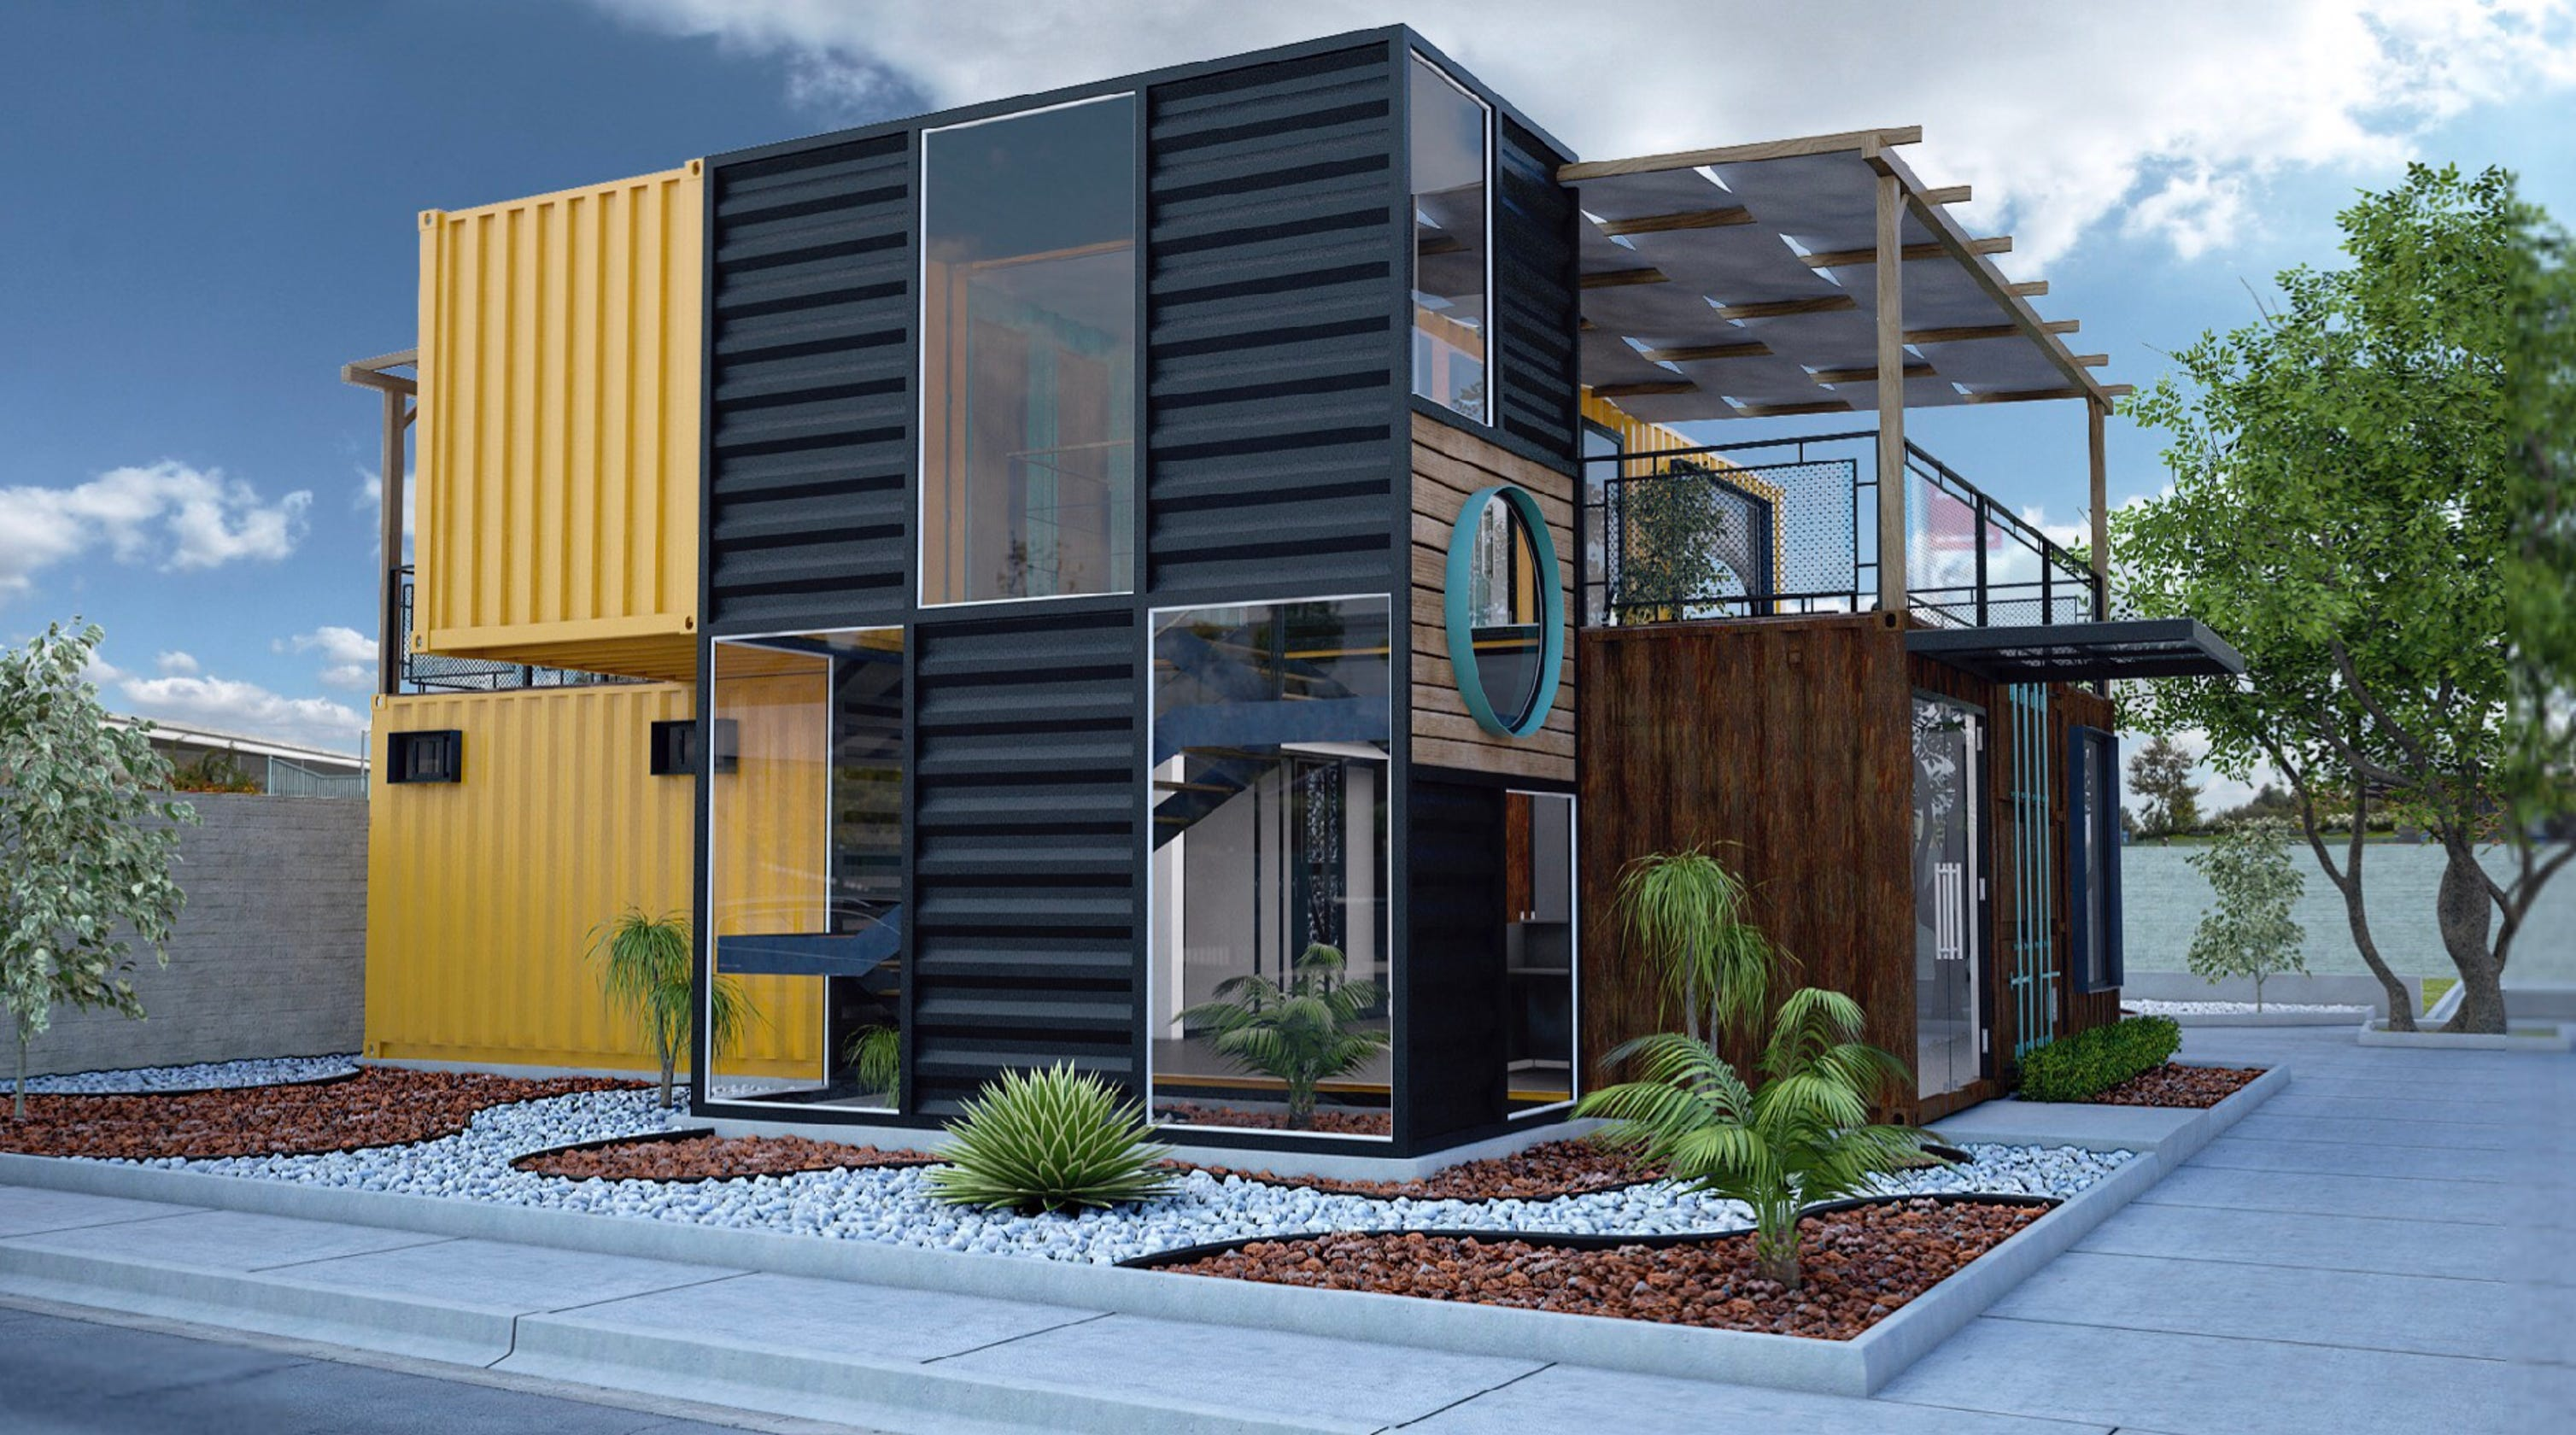 House Built With Shipping Containers In Guadalajara Jalisco: Las Cruces Realtor Building New Office Out Of Old Shipping